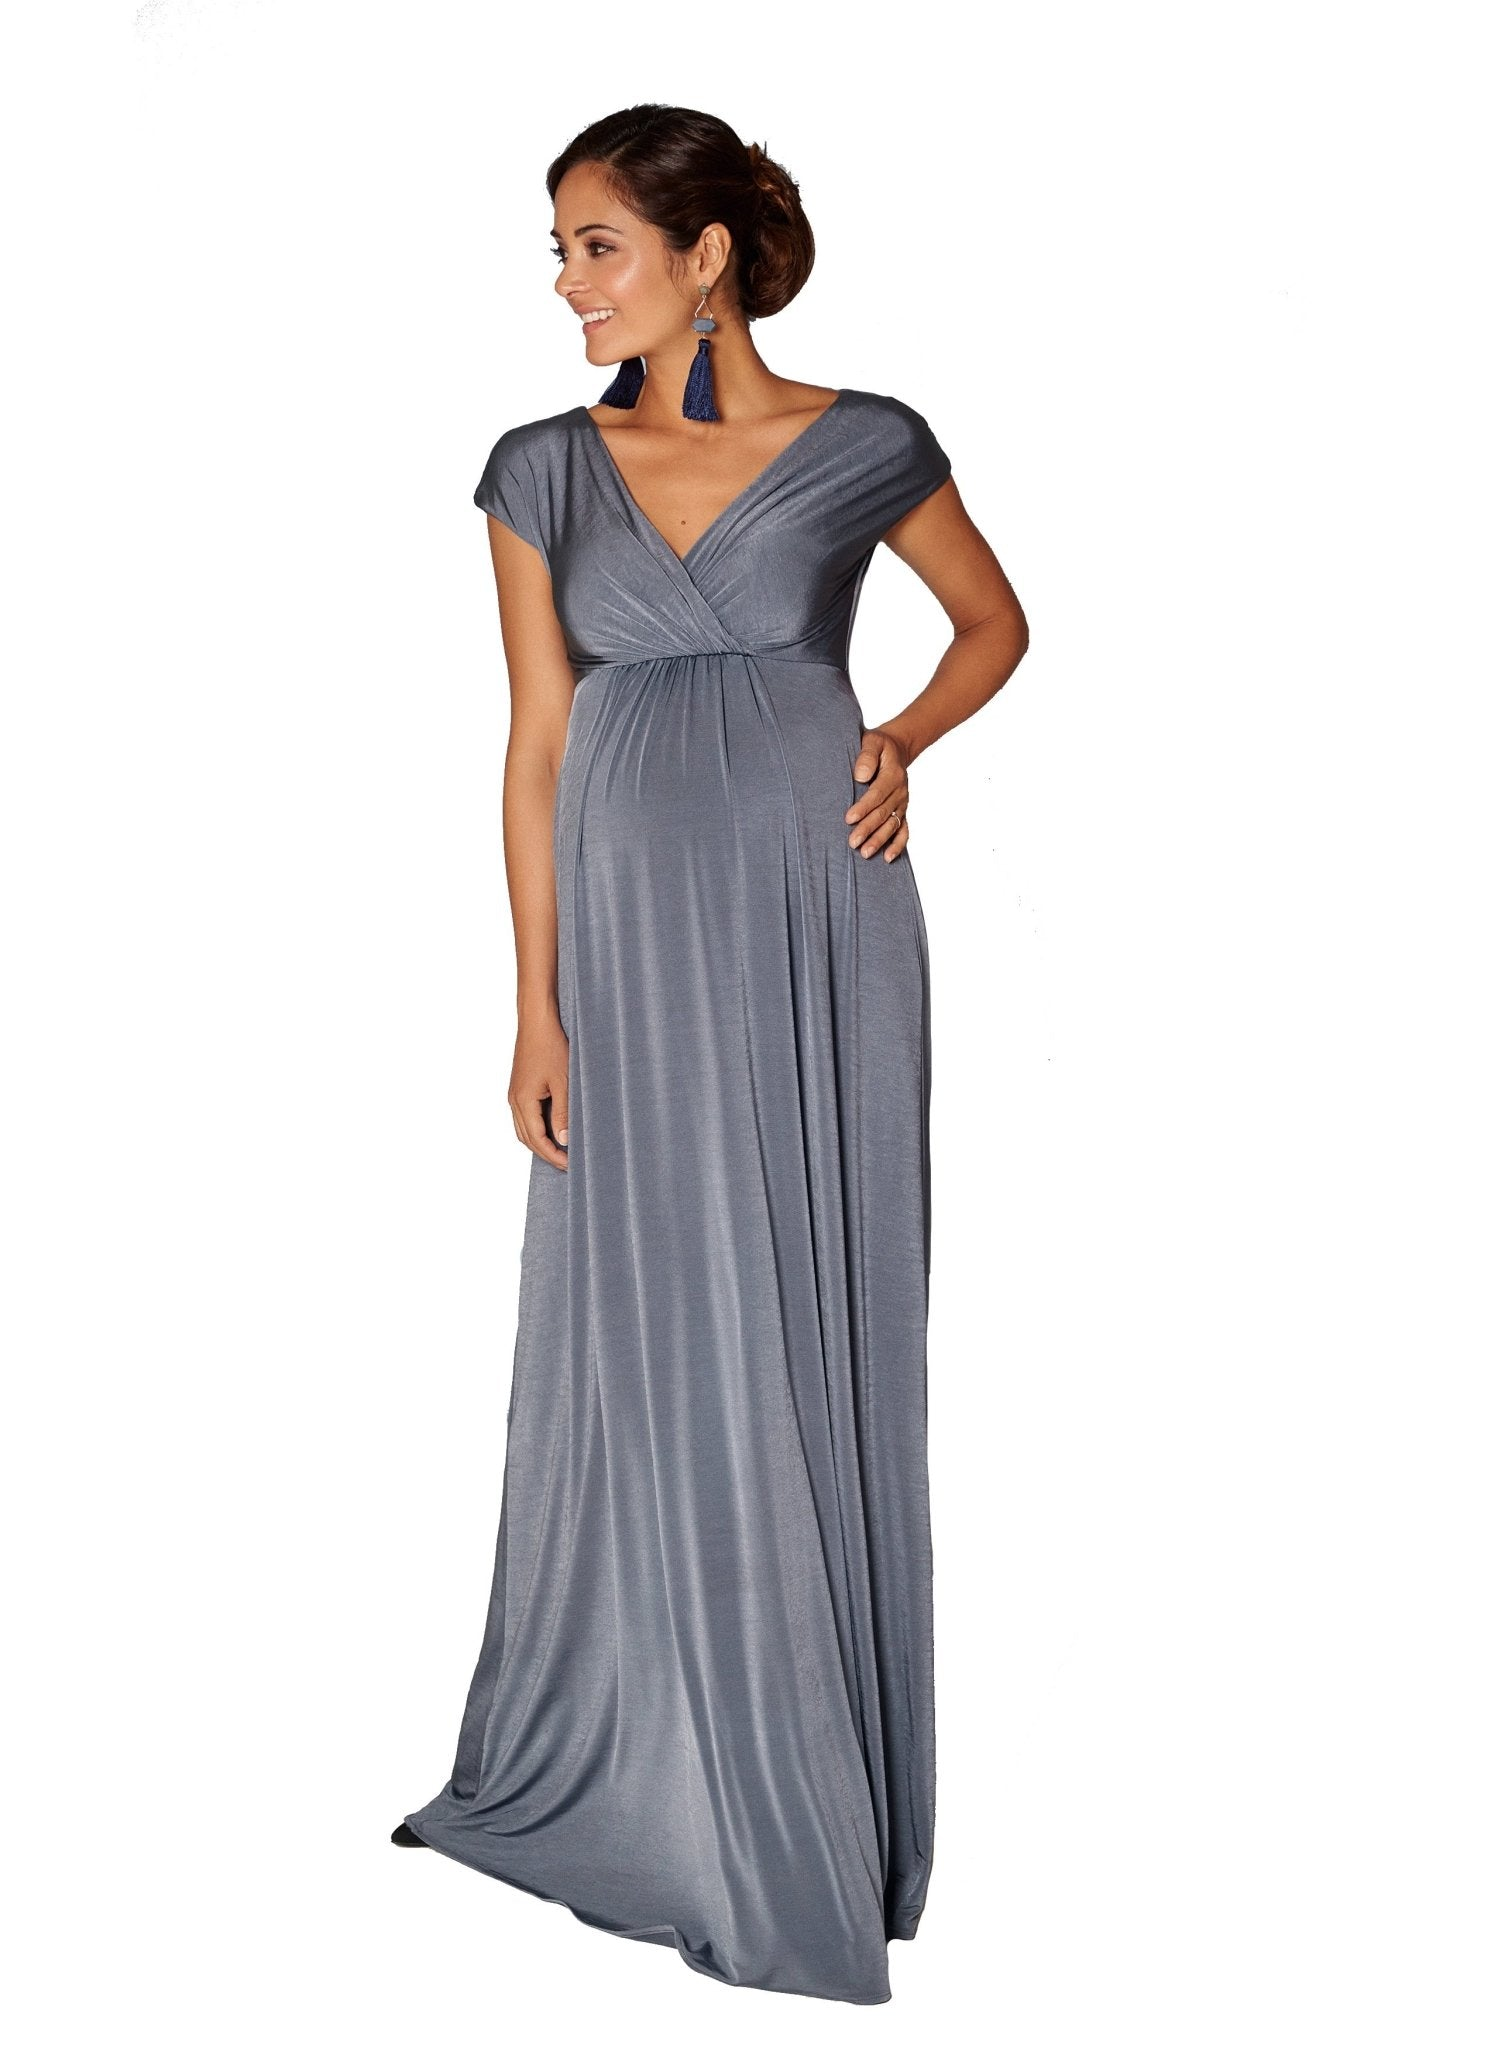 Francesca Maternity Maxi Dress - Steel Blue - Mums and Bumps